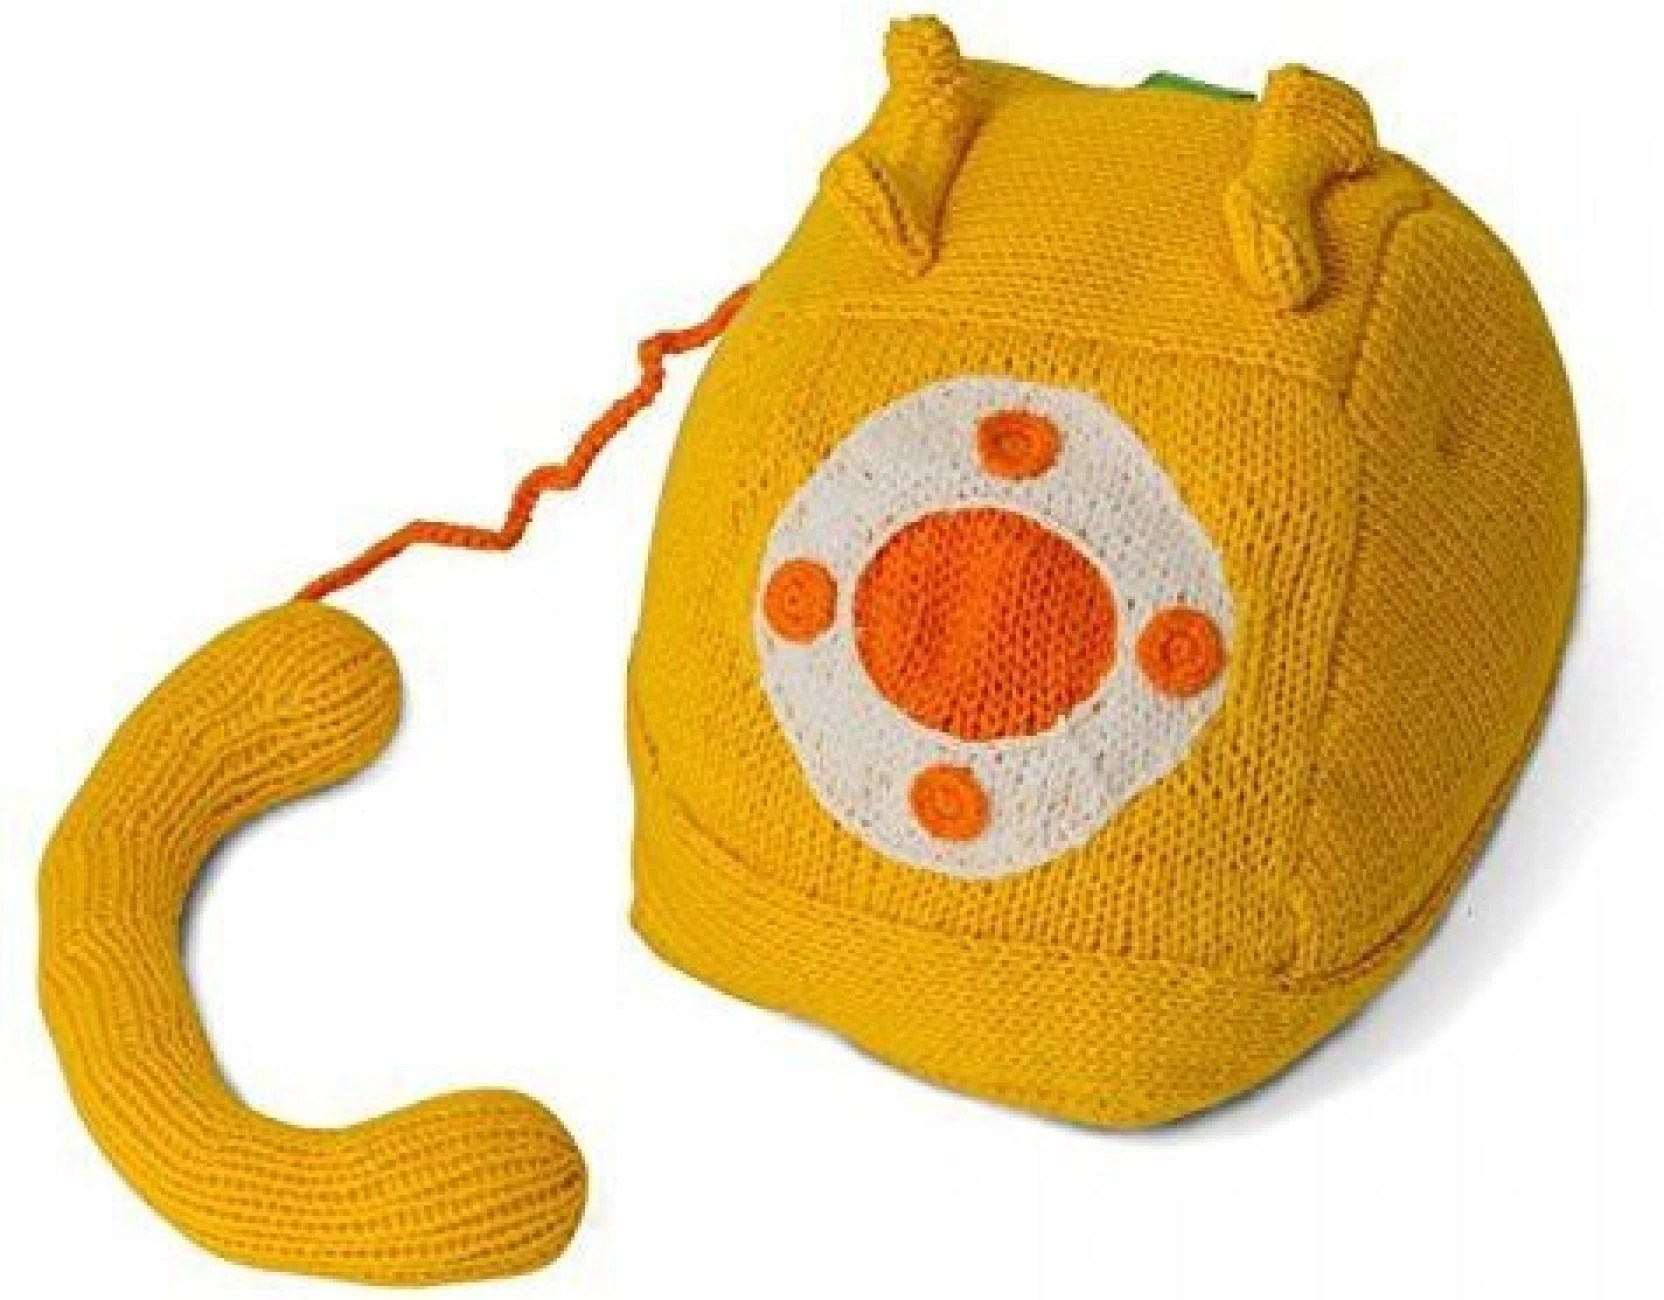 estella pil phone hand knit rotary phone plush toy 9 inch multicolor  [ 1664 x 1300 Pixel ]